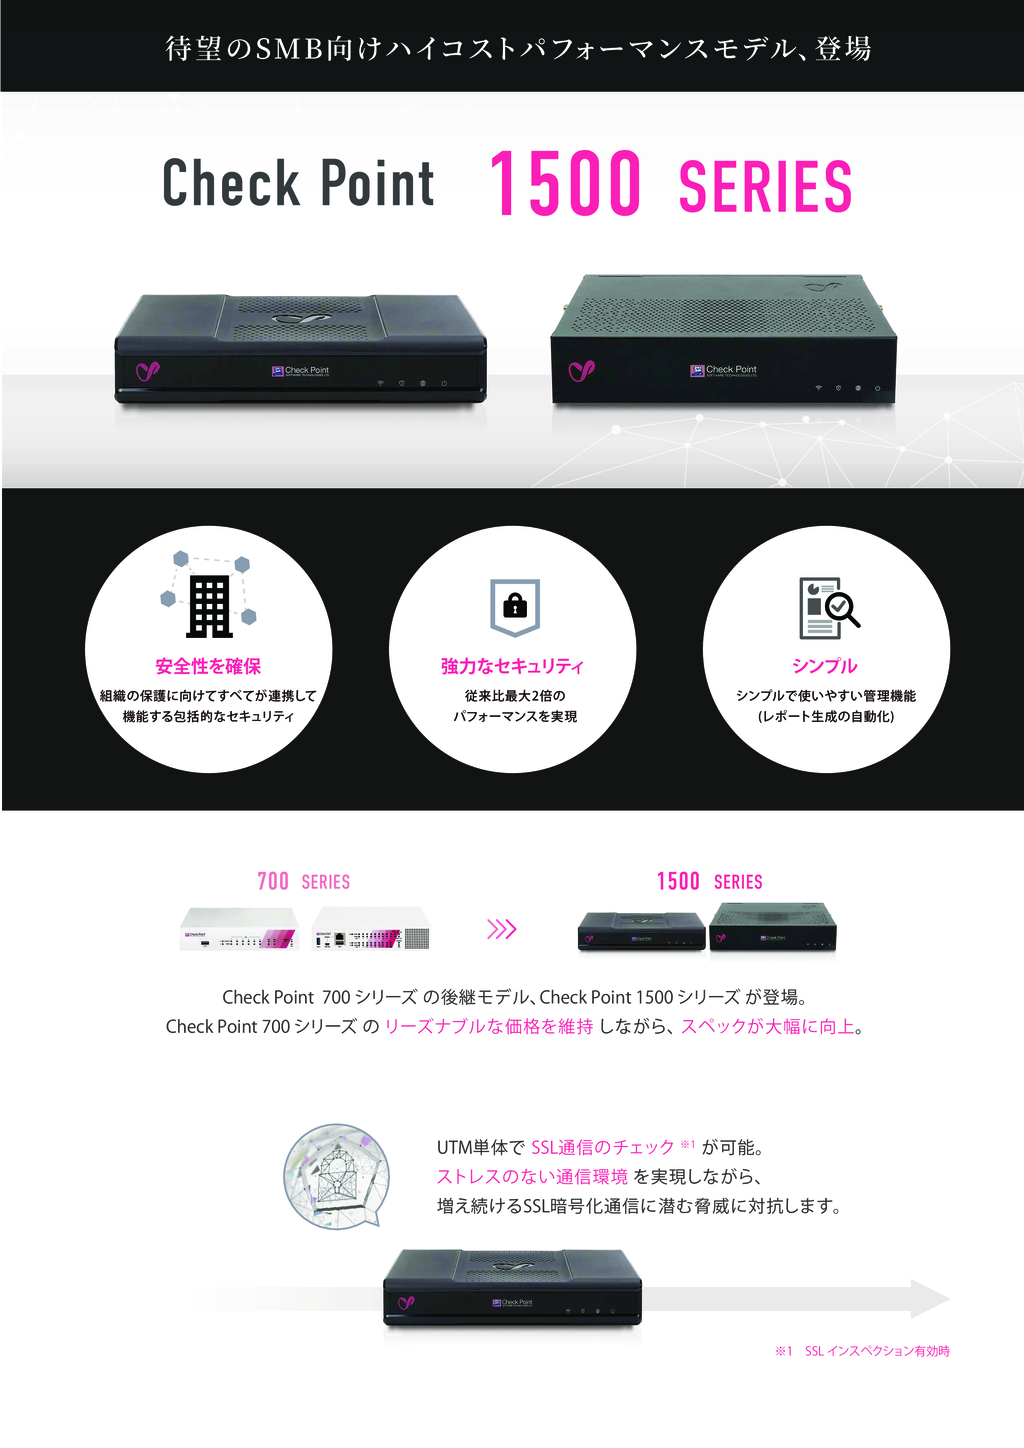 CheckPoint 1500 Applianceの資料